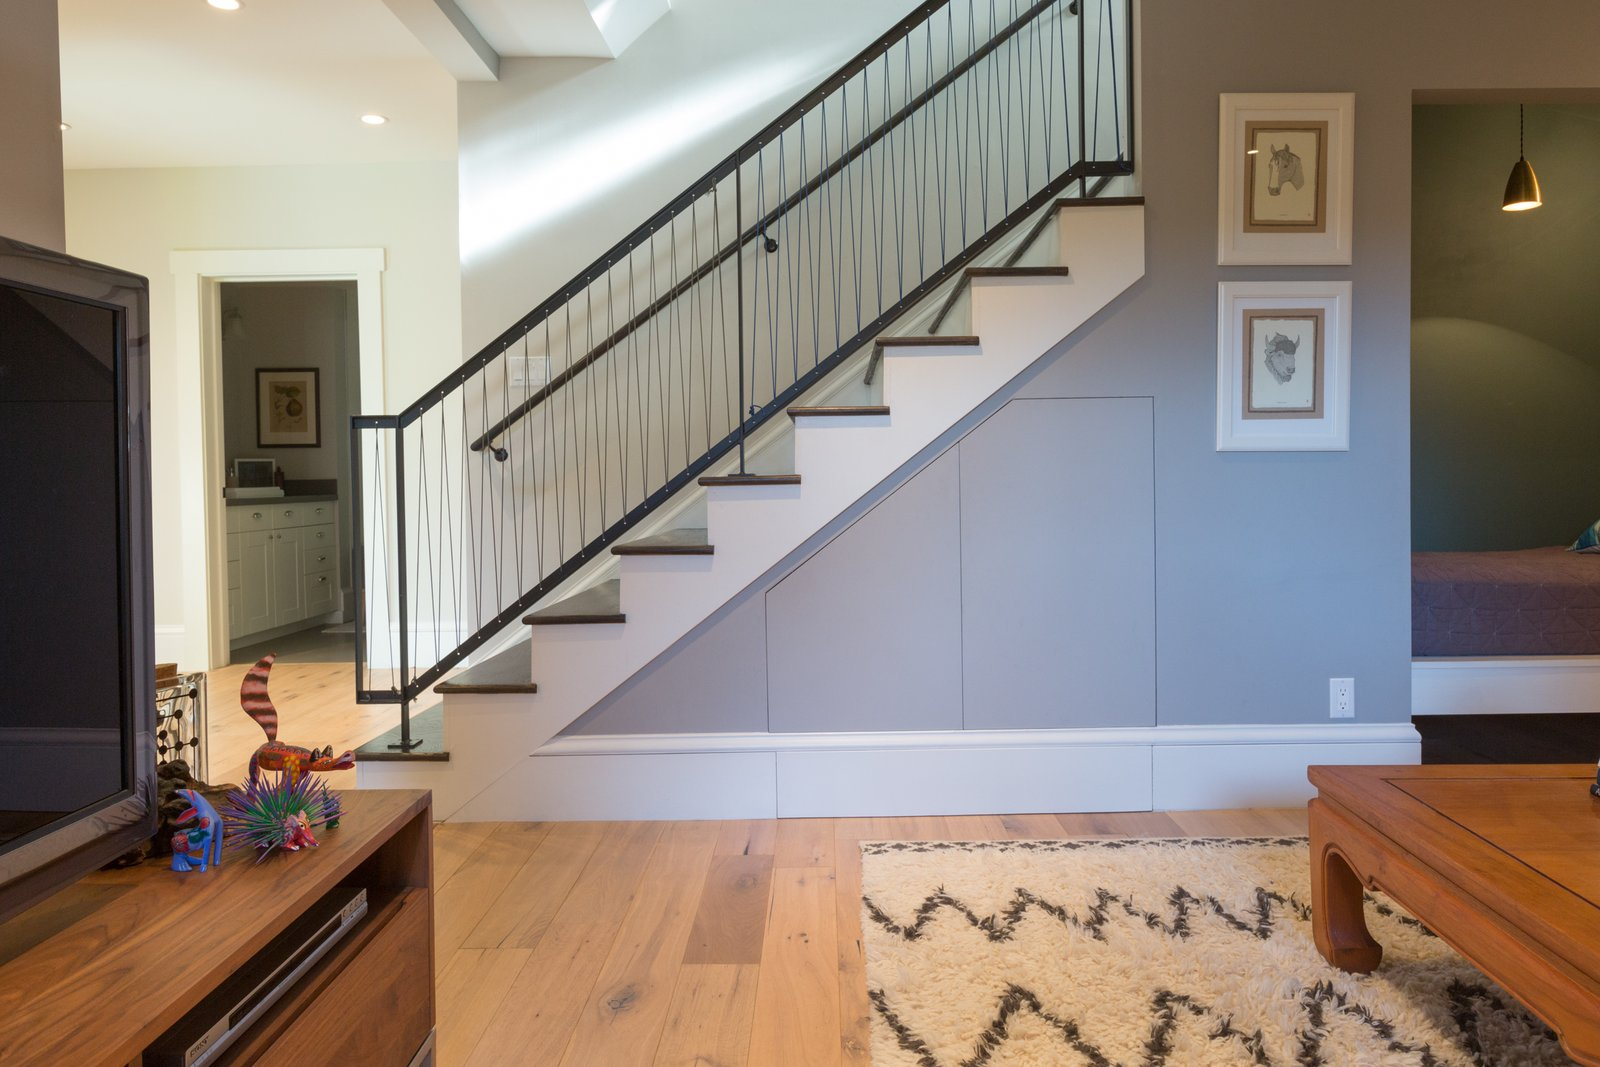 When connecting the basement level to the rest of the home, Wendi Sue chose a contemporary railing that would still cohere with the more traditional vernacular throughout. The custom steel stairwell features a matte black powder finish and pickets of tensioned military parachute cord. No Longer Off-Kilter - Photo 9 of 15